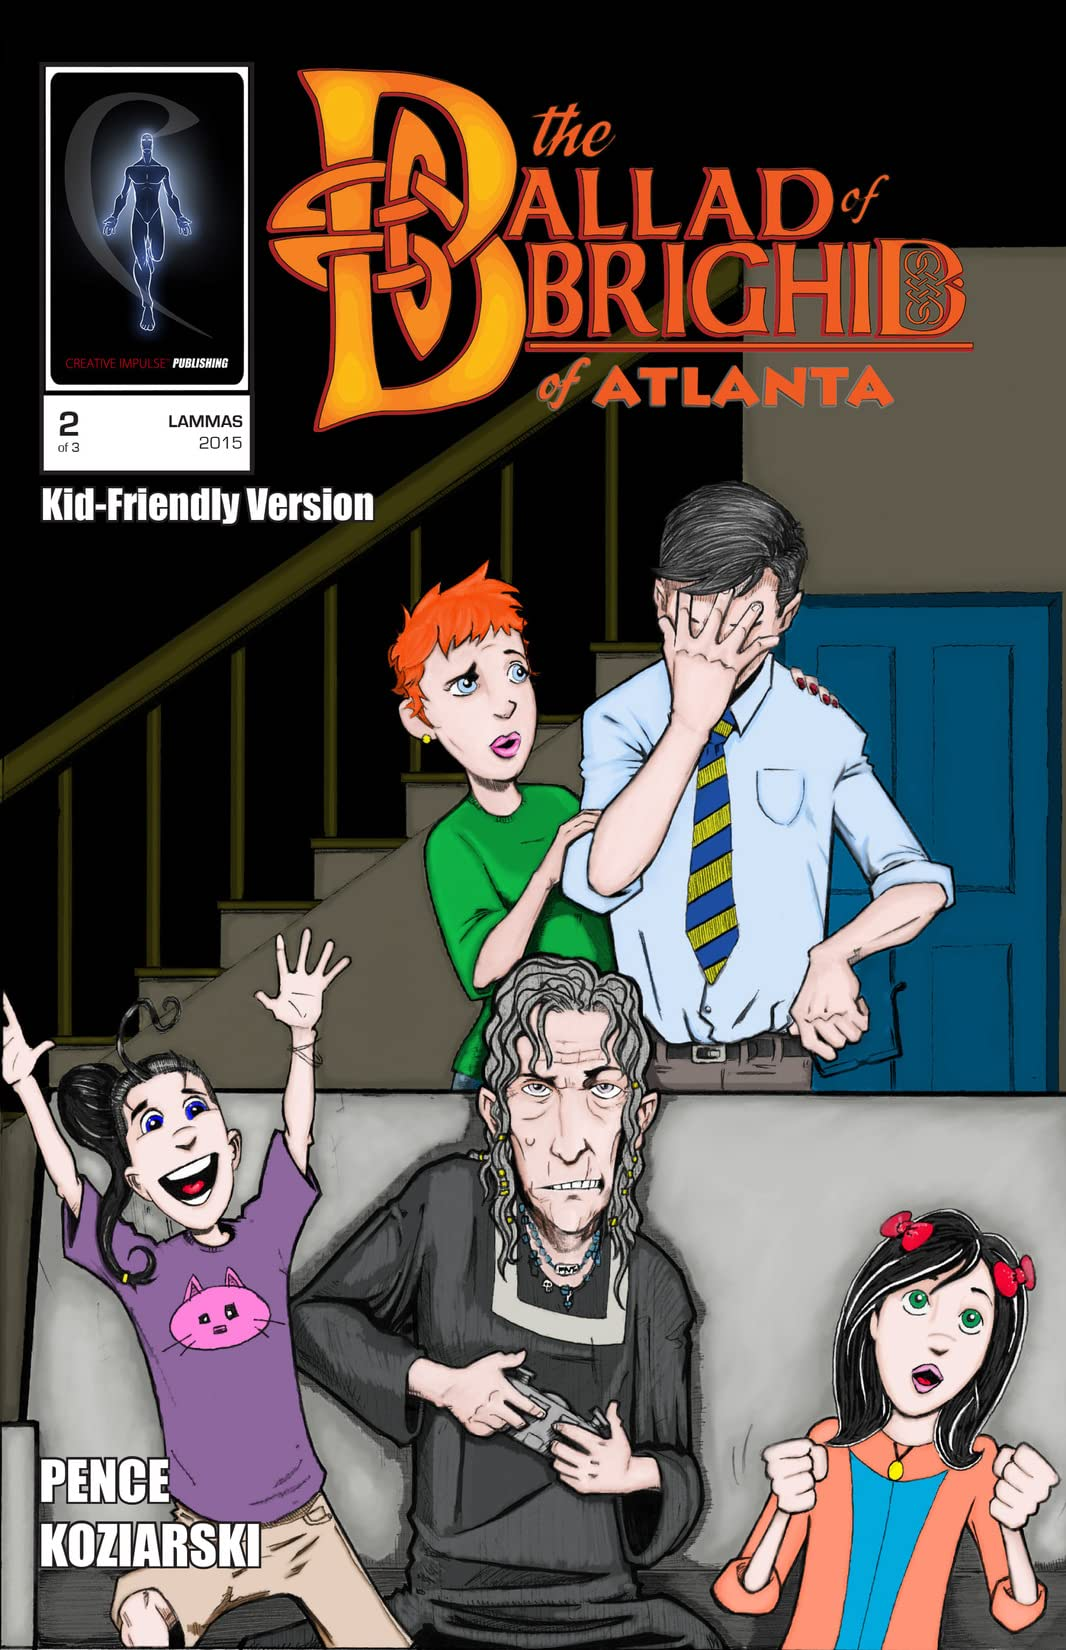 The Ballad of Brighid of Atlanta (Kid-Friendly Version) #2